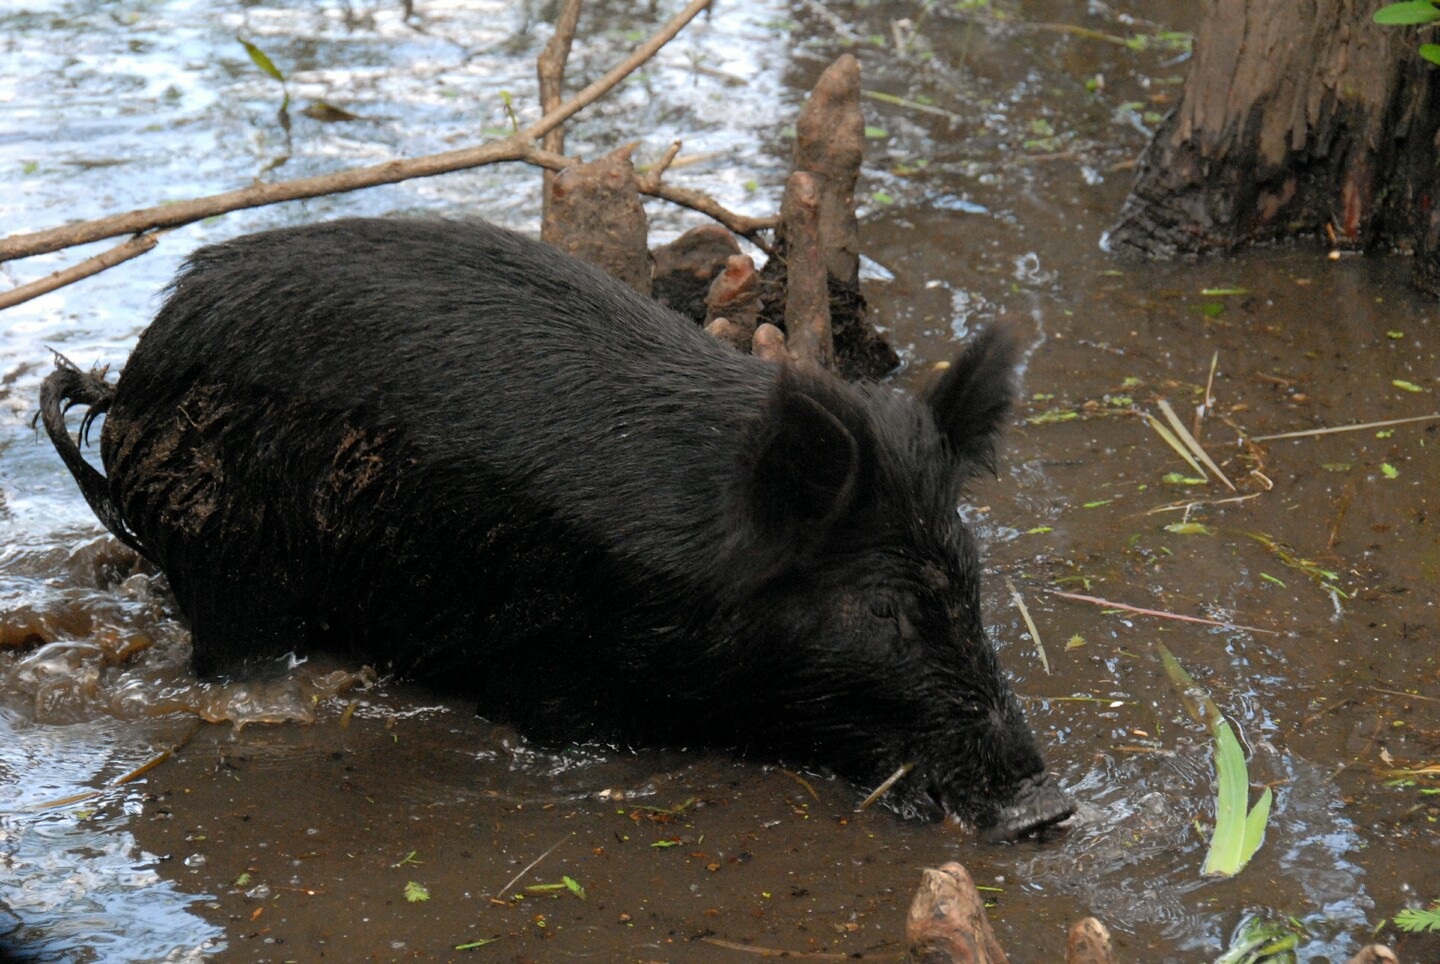 Wild Pigs in the Swamp